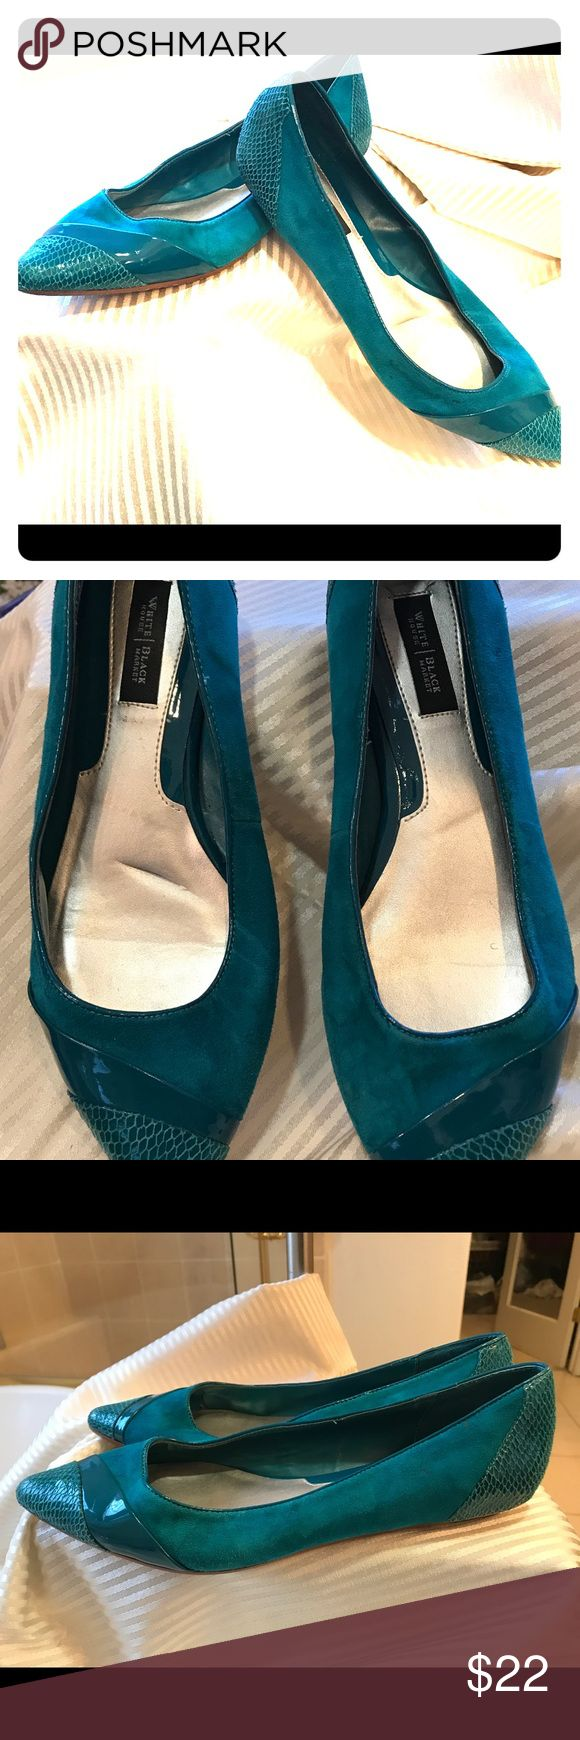 White House Black Market teal flats White House Black Market suede teal flats with snake skin patent leather detail.  Shoes worn only a few times.  Run on the narrow side.  In good condition.  Bundles and offers always welcomed. White House Black Market Shoes Flats & Loafers